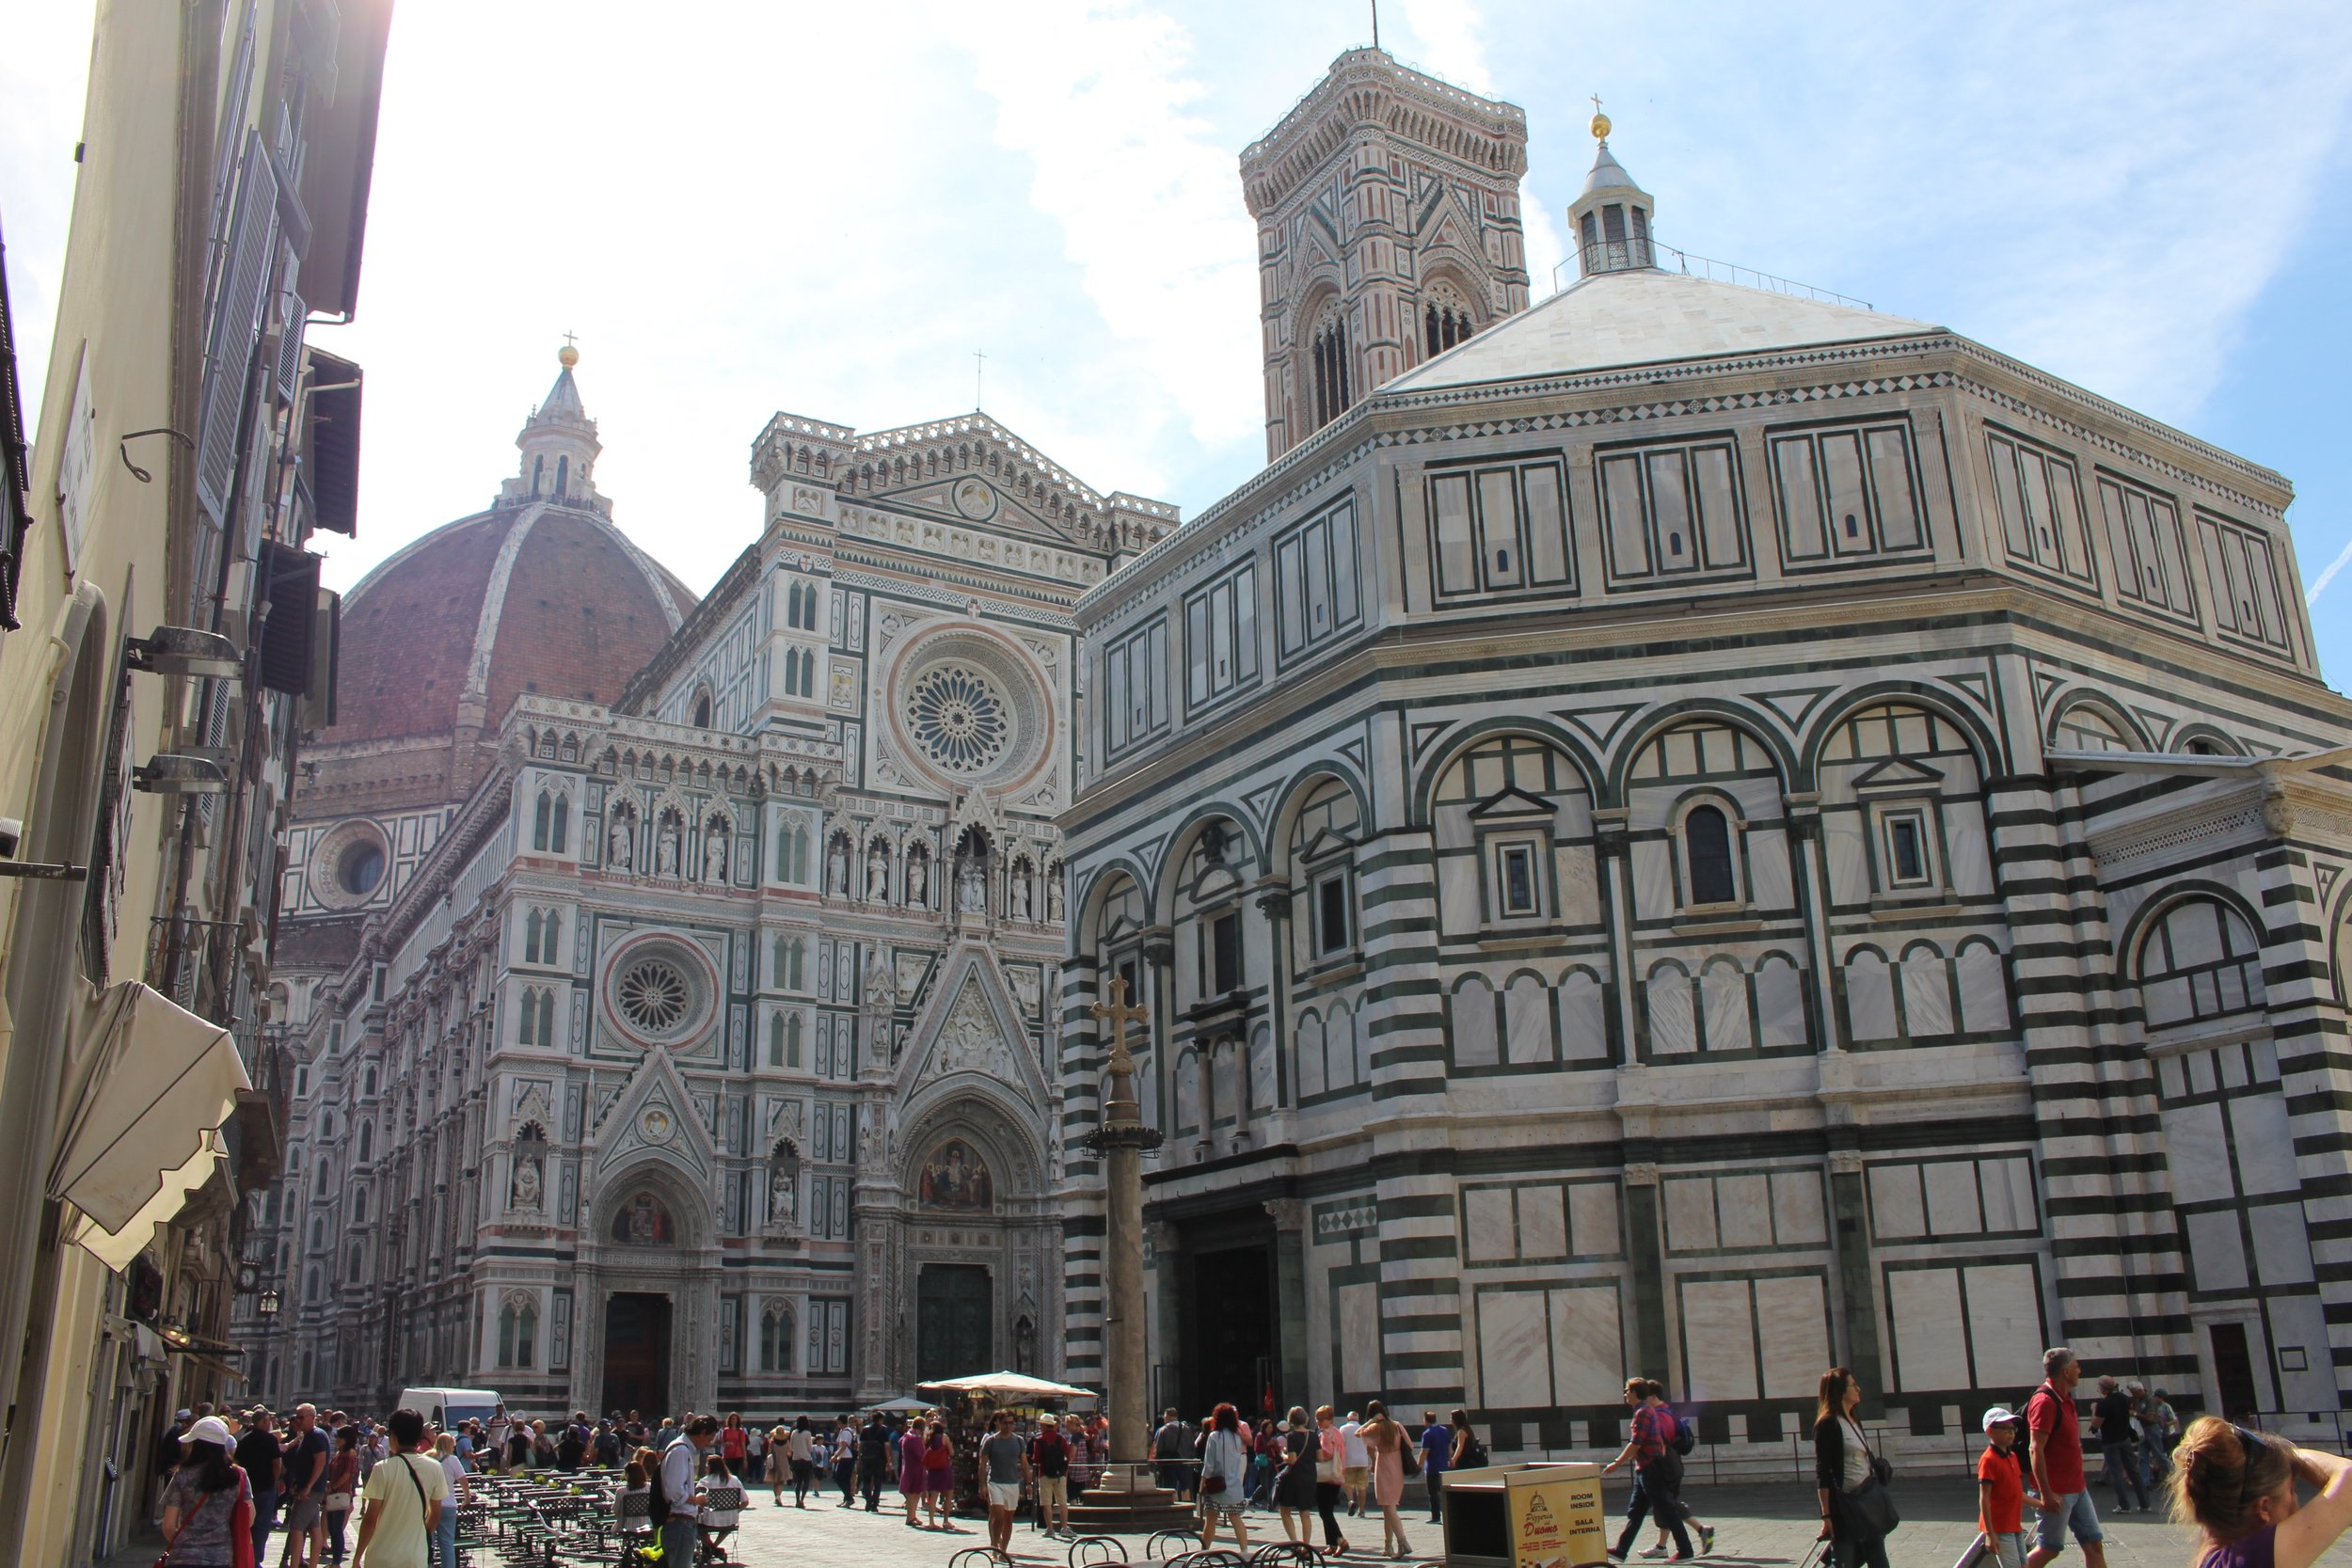 There are no words for this the Cathedral of Santa Maria De Fiore- The Duomo